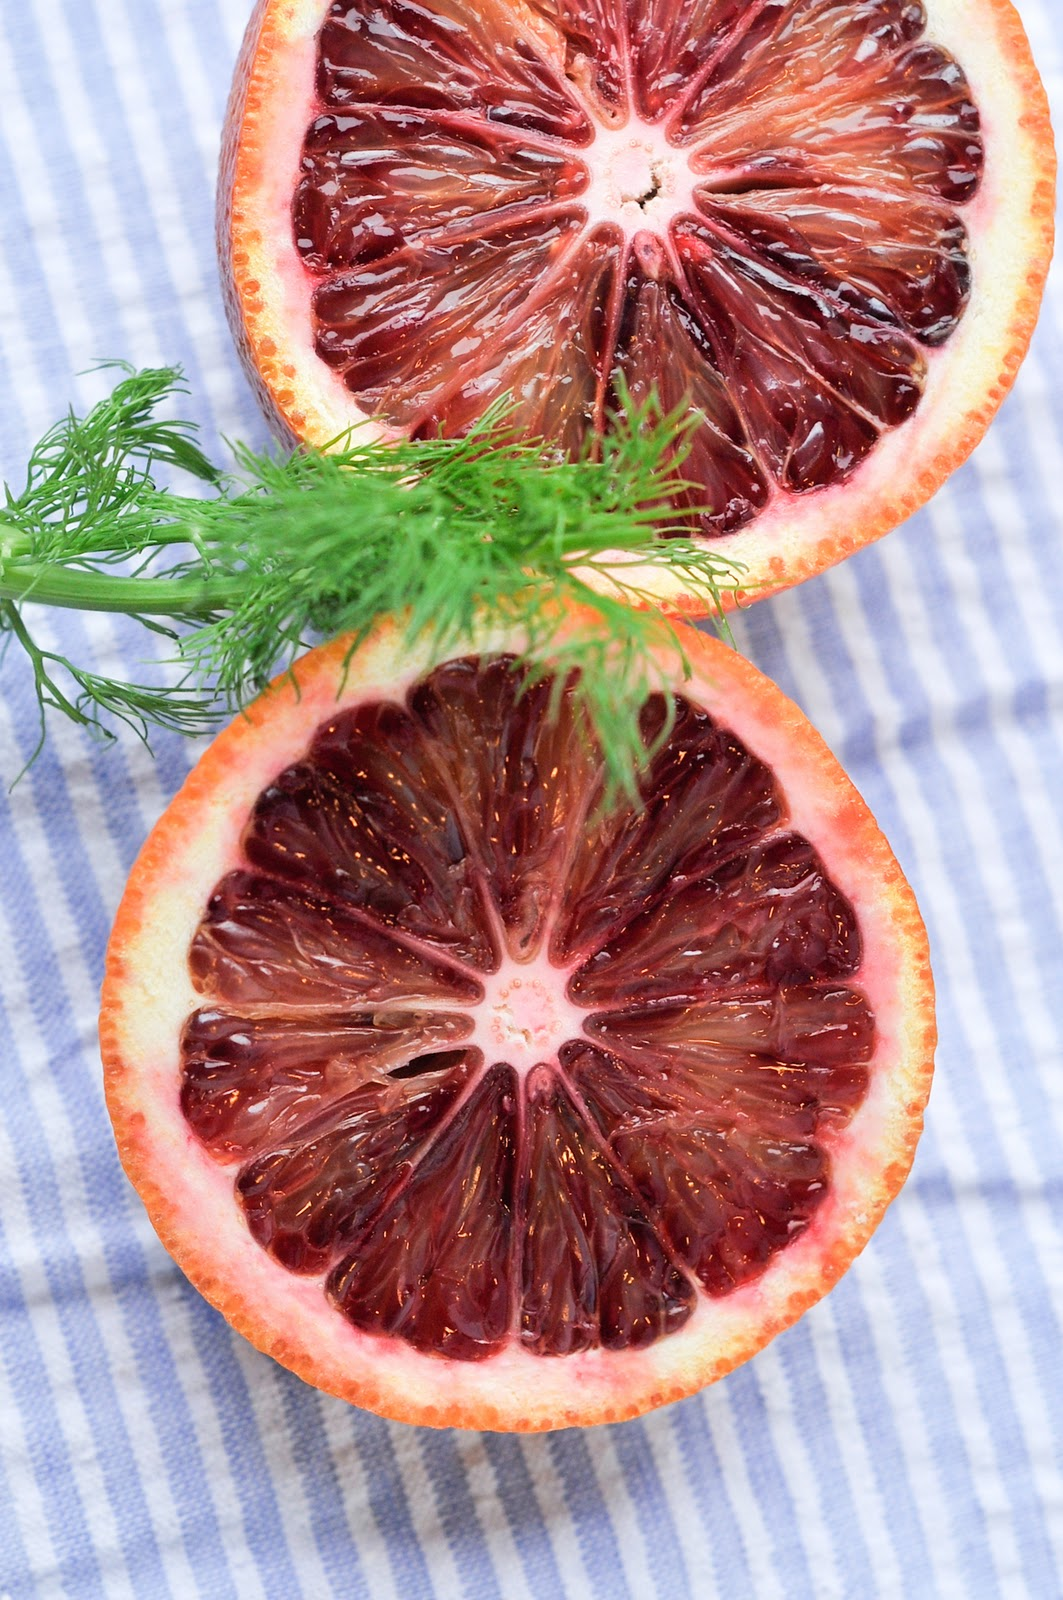 Recipe for Blood Orange, Beet and Fennel Salad